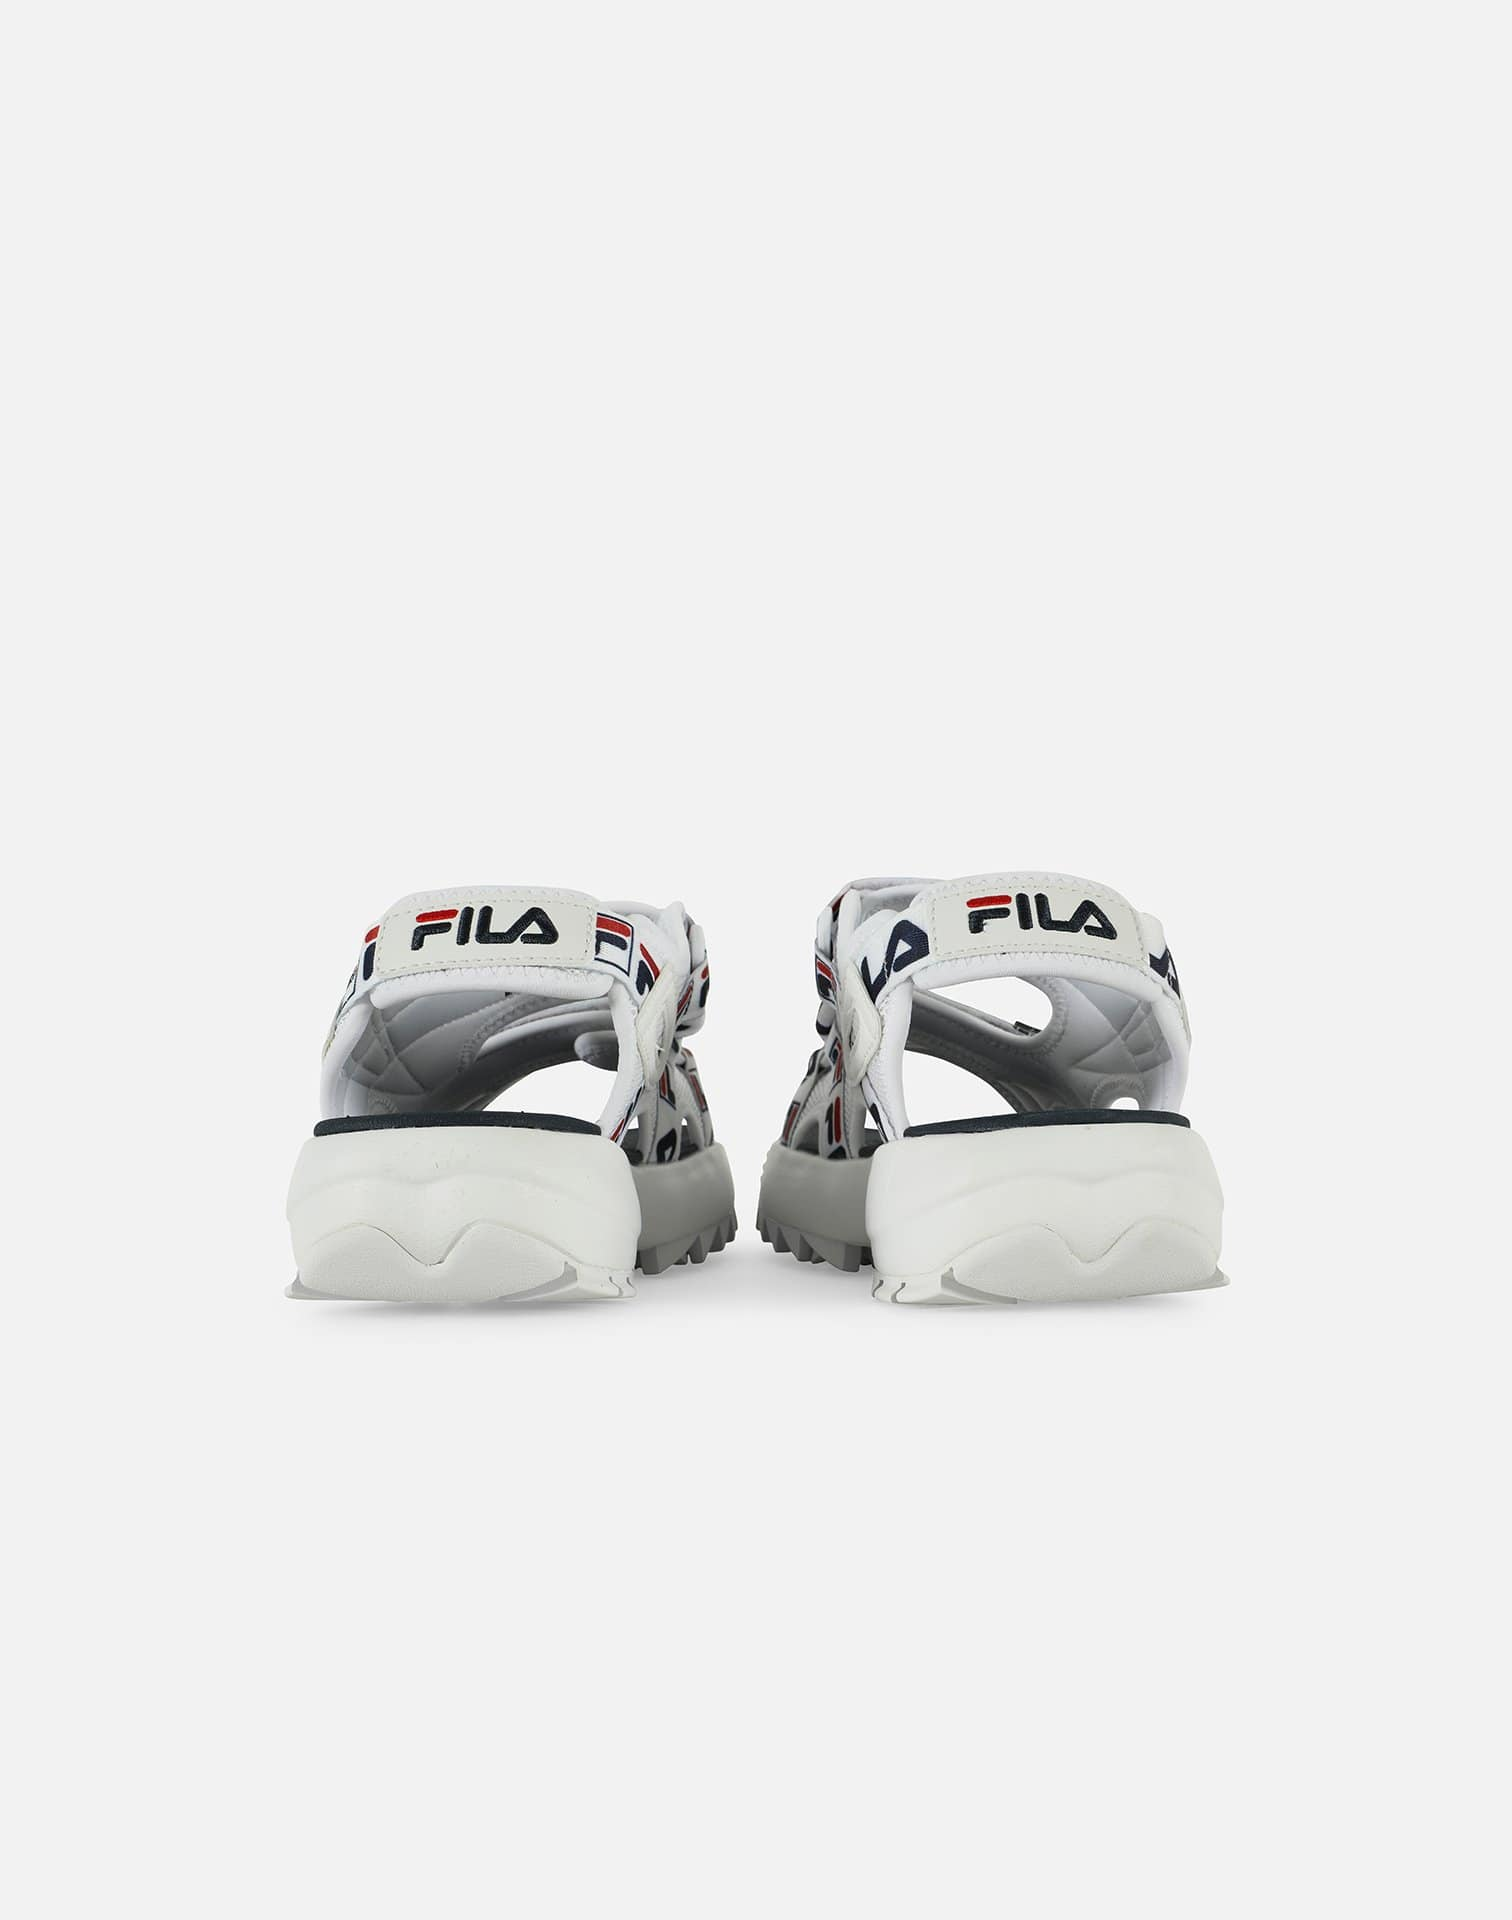 FILA Women's Disruptor Sandals